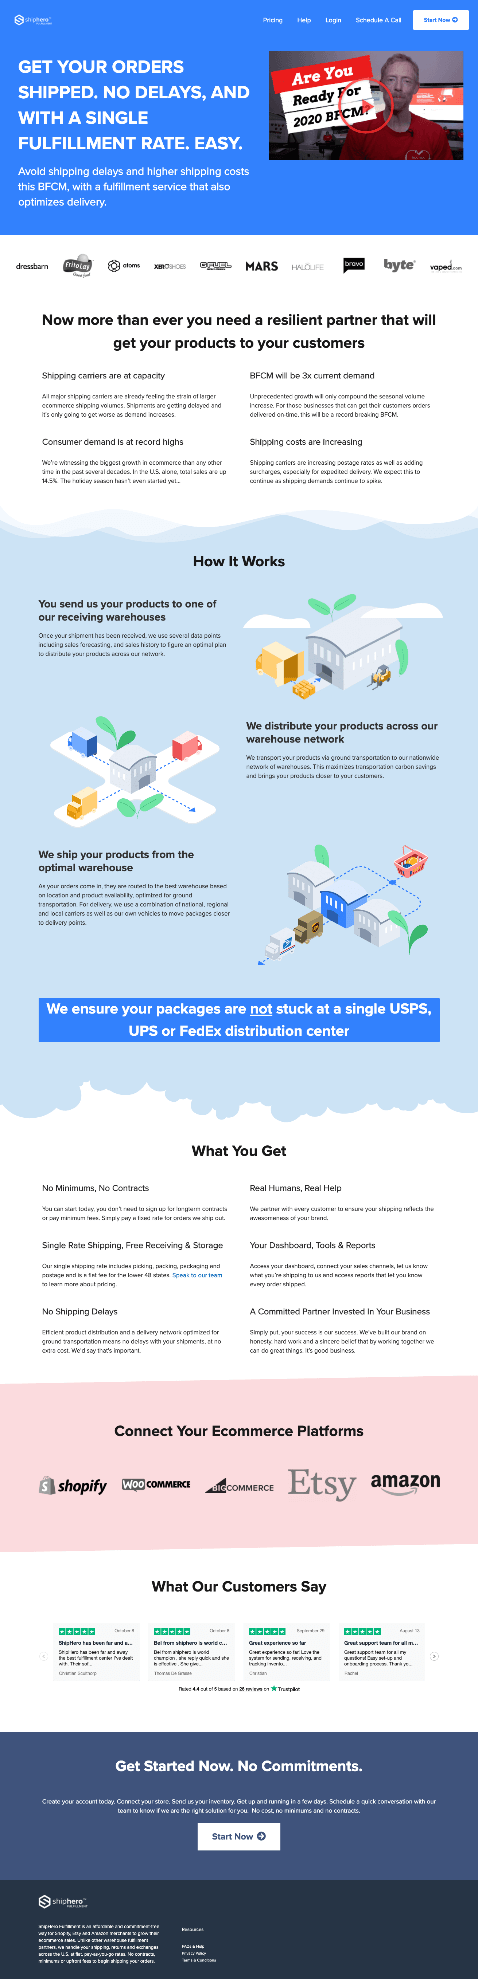 Creative Sample #6: New landing page for fulfillment software company